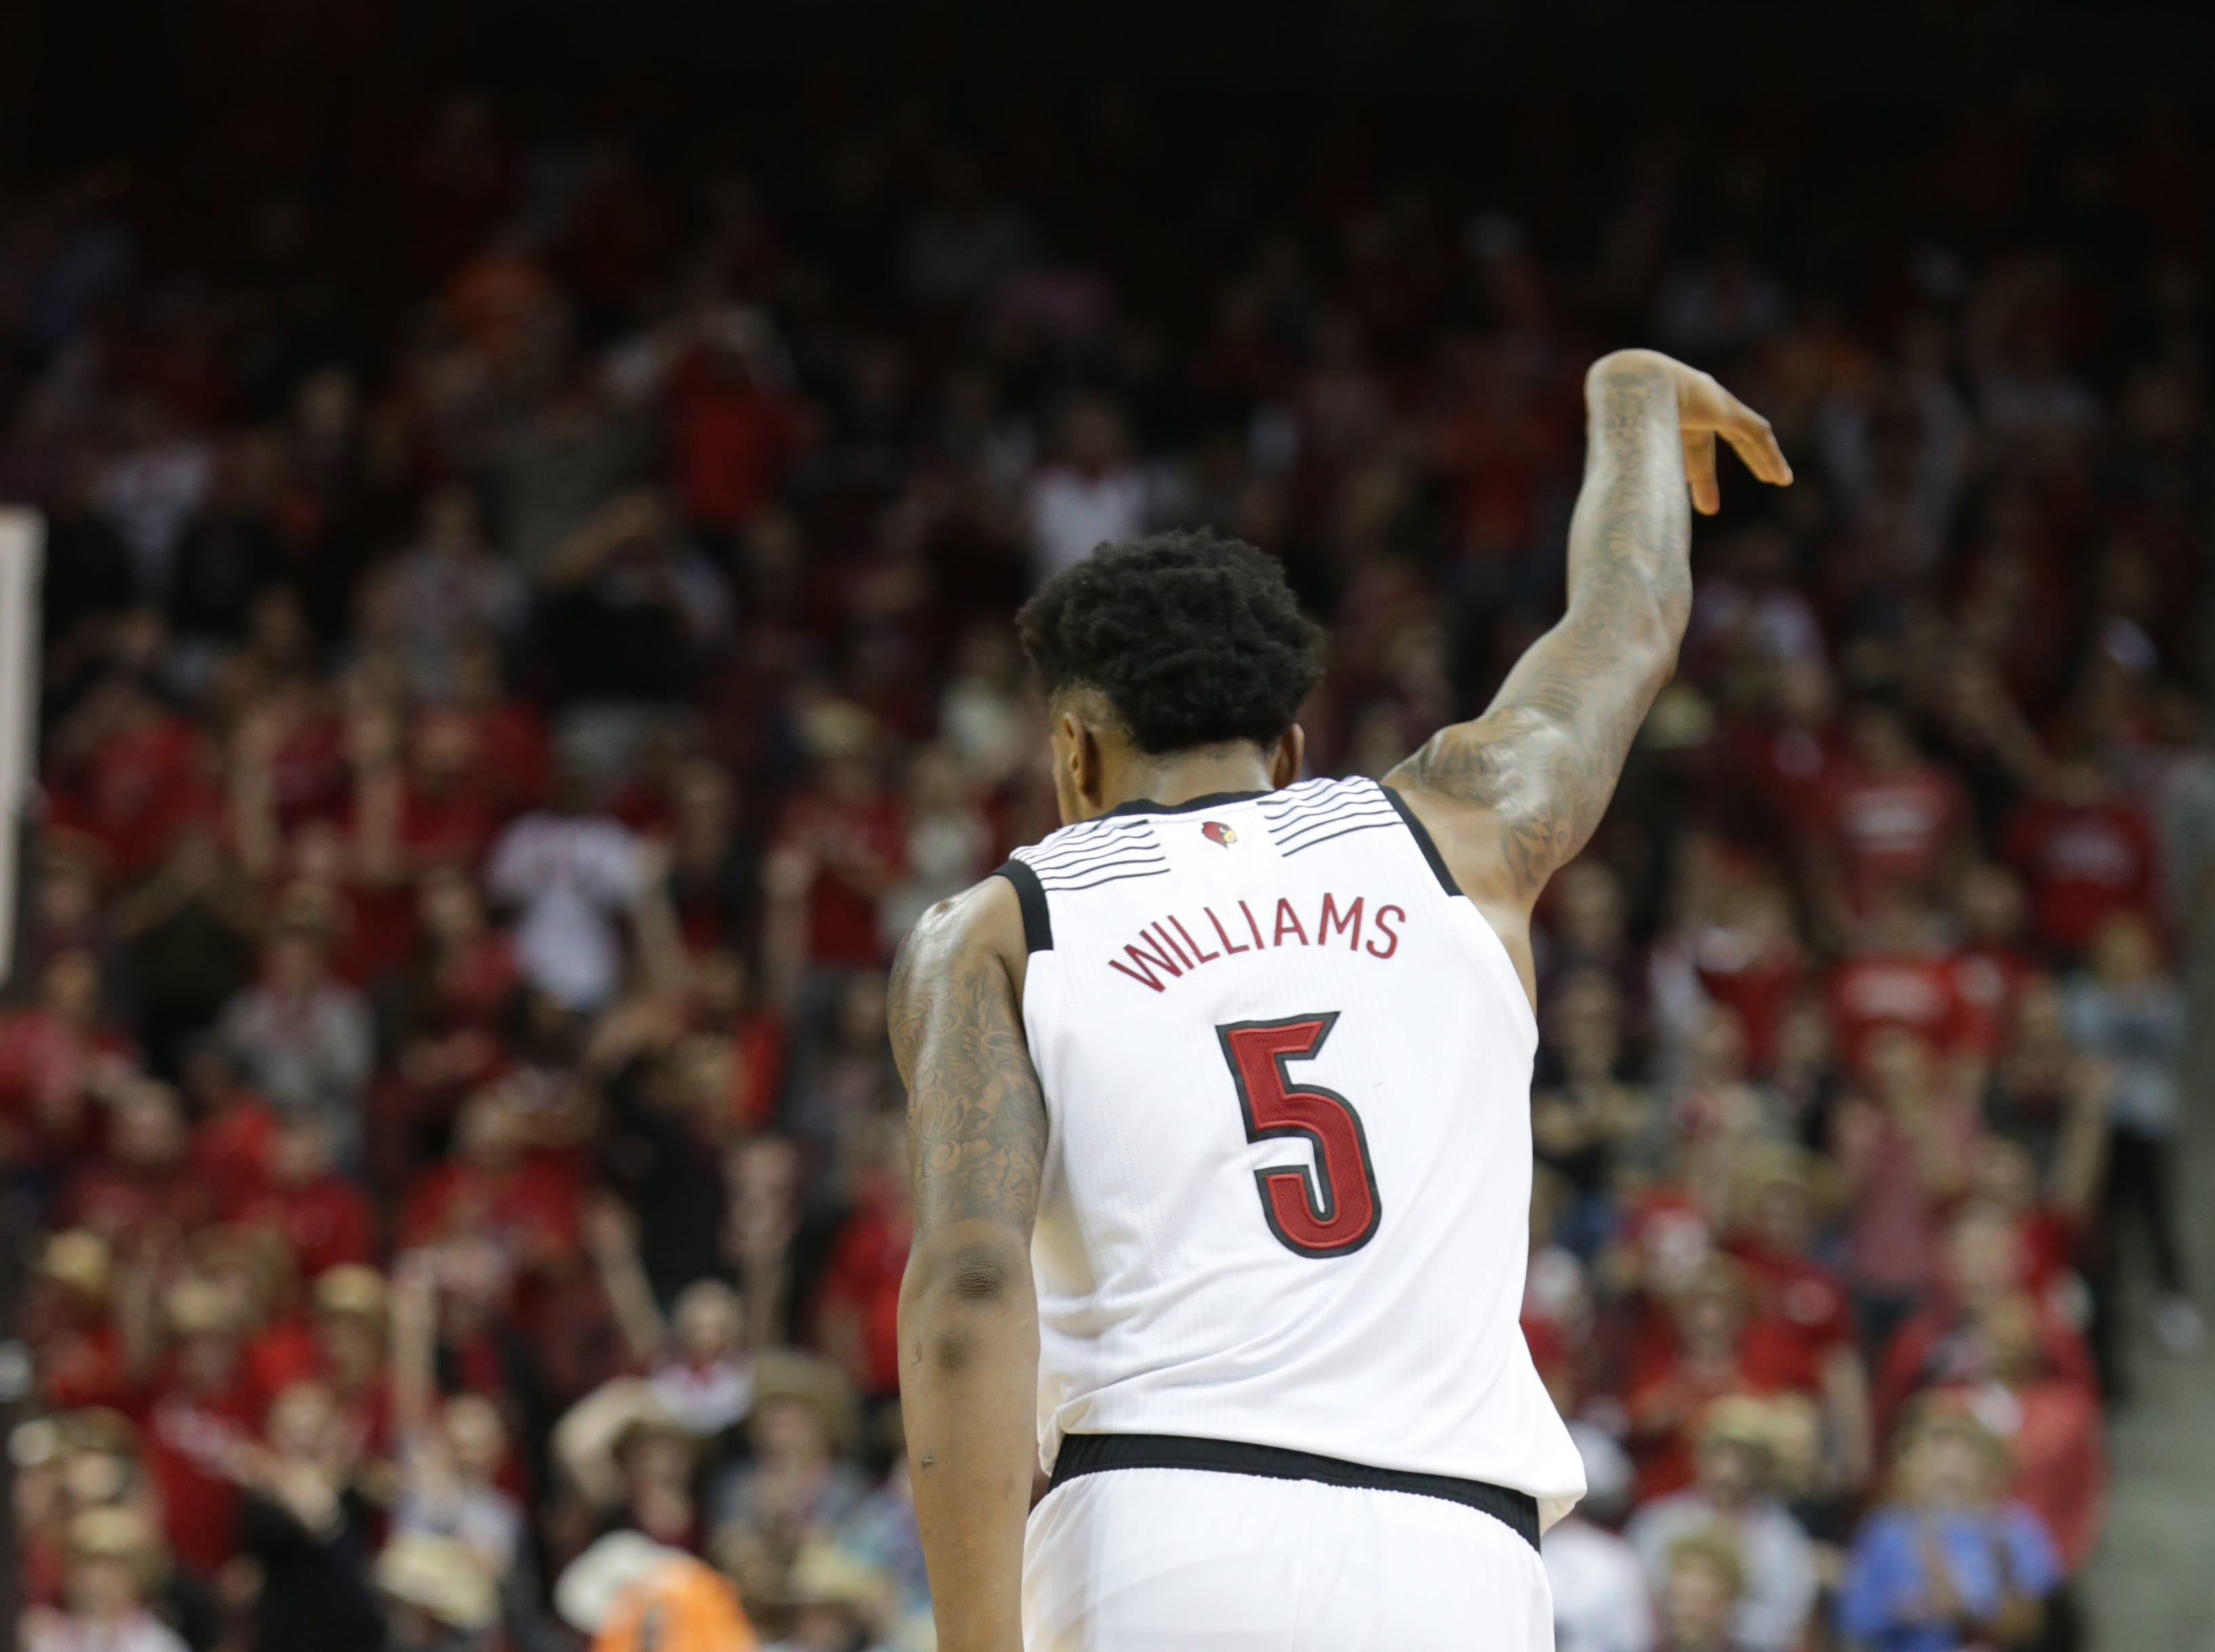 Louisville's Malik Williams celebrates after hitting a three point shot during the second half against Miami. Williams scored19 points in the game. Jan. 6, 2019.